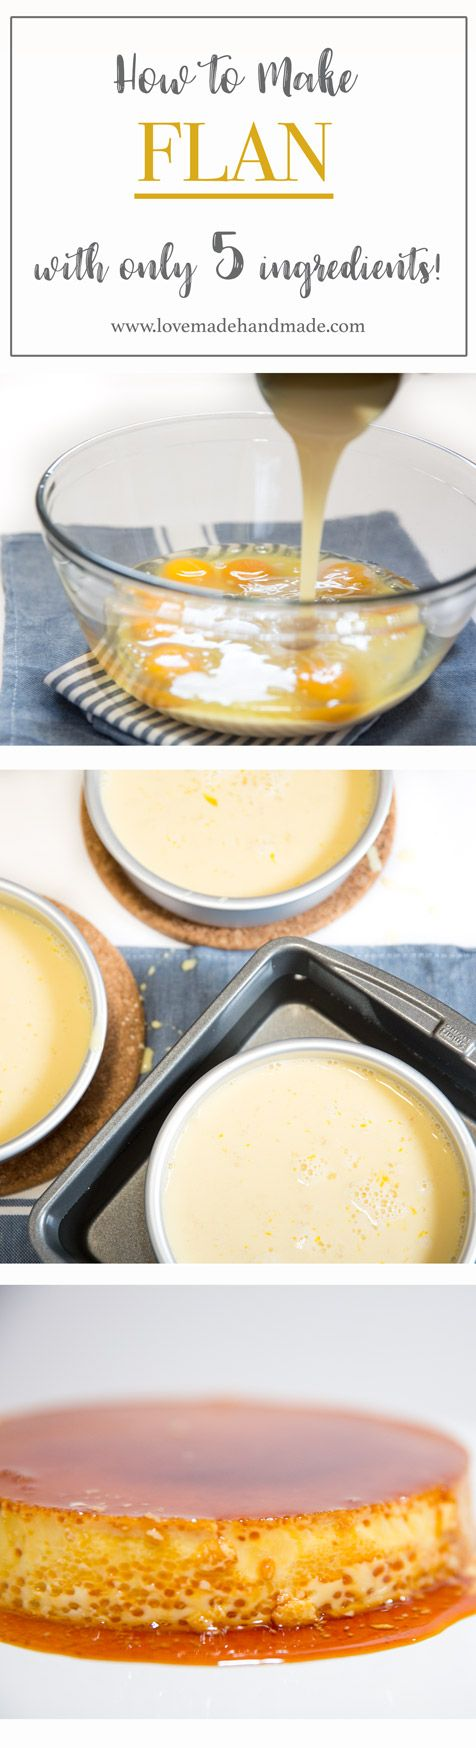 You only need Eggs, Condensed Milk, Vanilla Extract, Sugar, and Water! Best-tasting FLAN, ever!